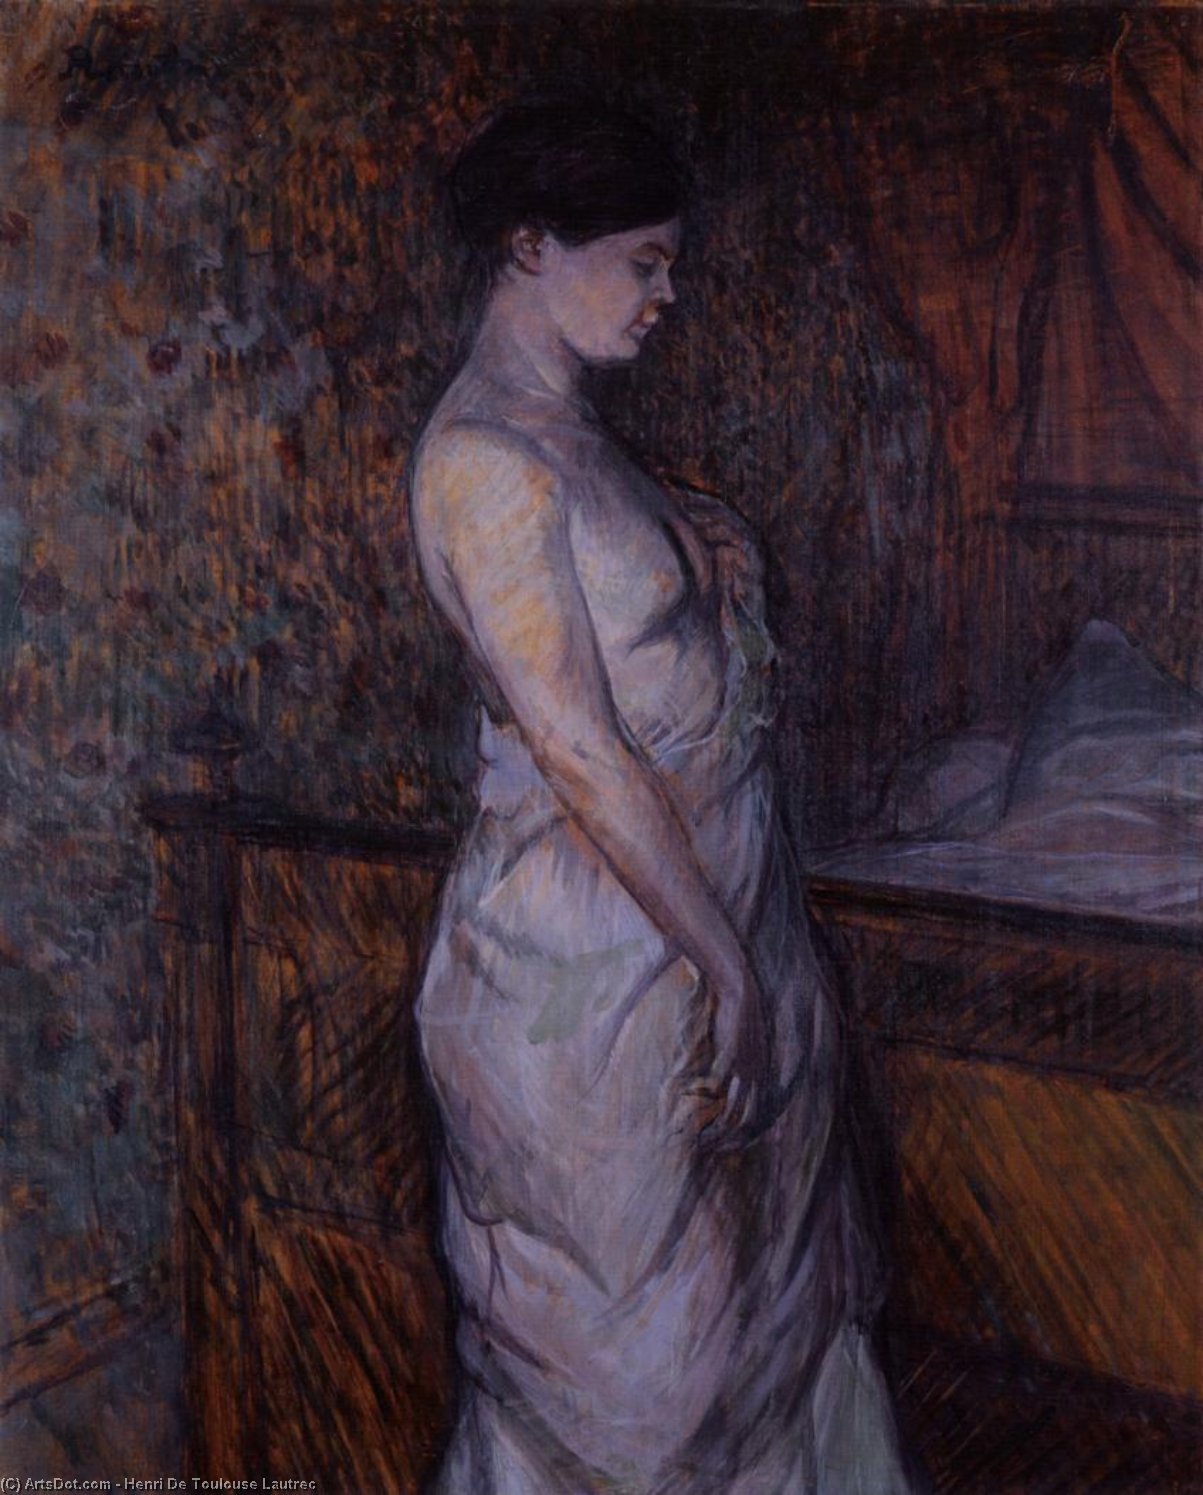 Woman in a Chemise Standing by a Bed (also known as Madame Poupoule), Oil On Panel by Henri De Toulouse Lautrec (1864-1901, France)